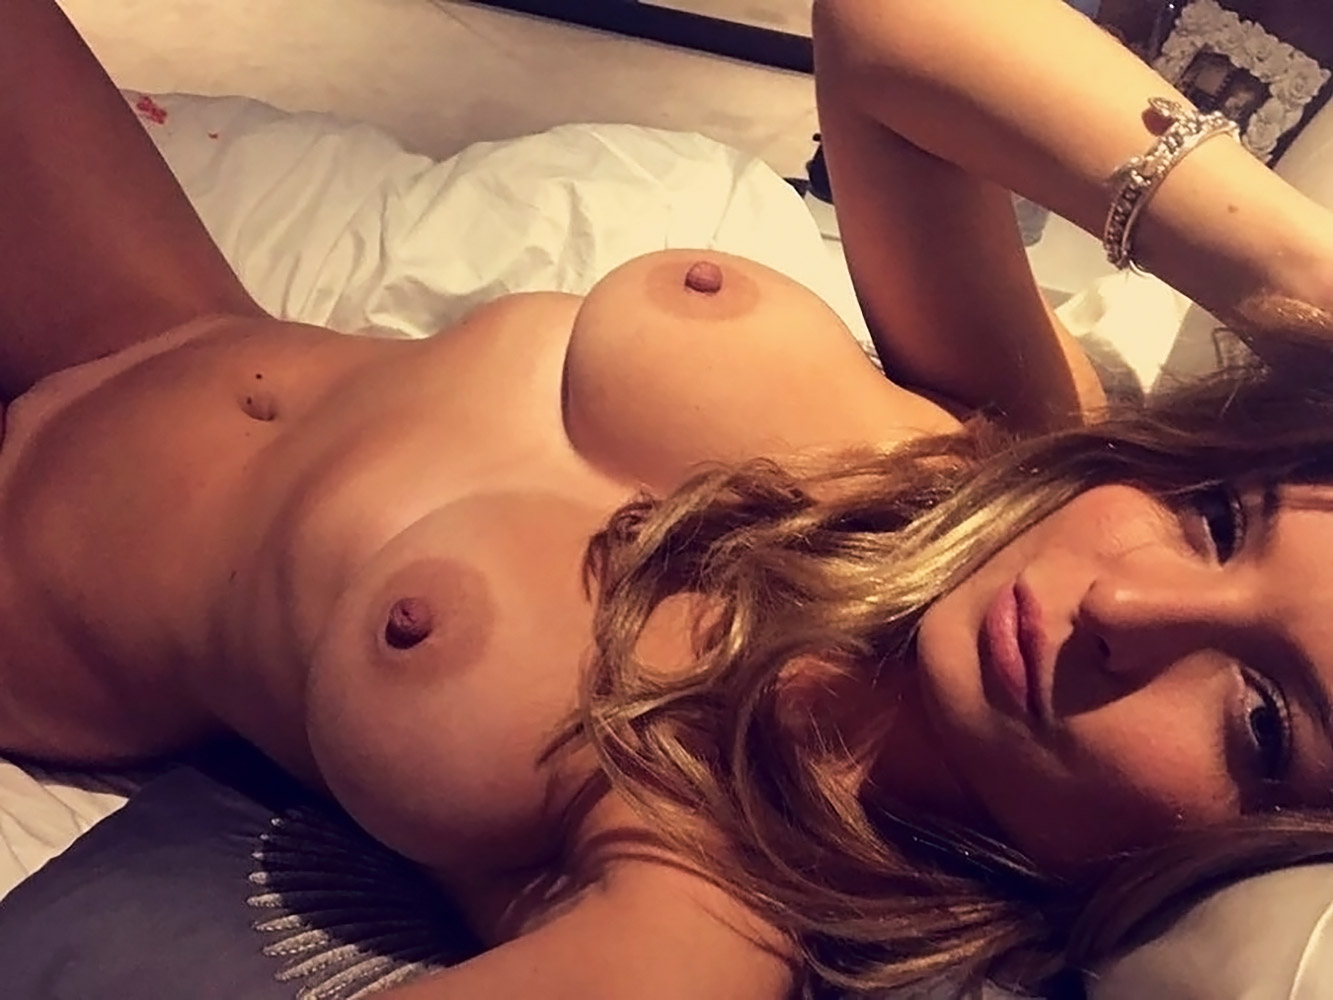 All About Ass Porn zara holland nude leaked pics & porn video - scandal planet